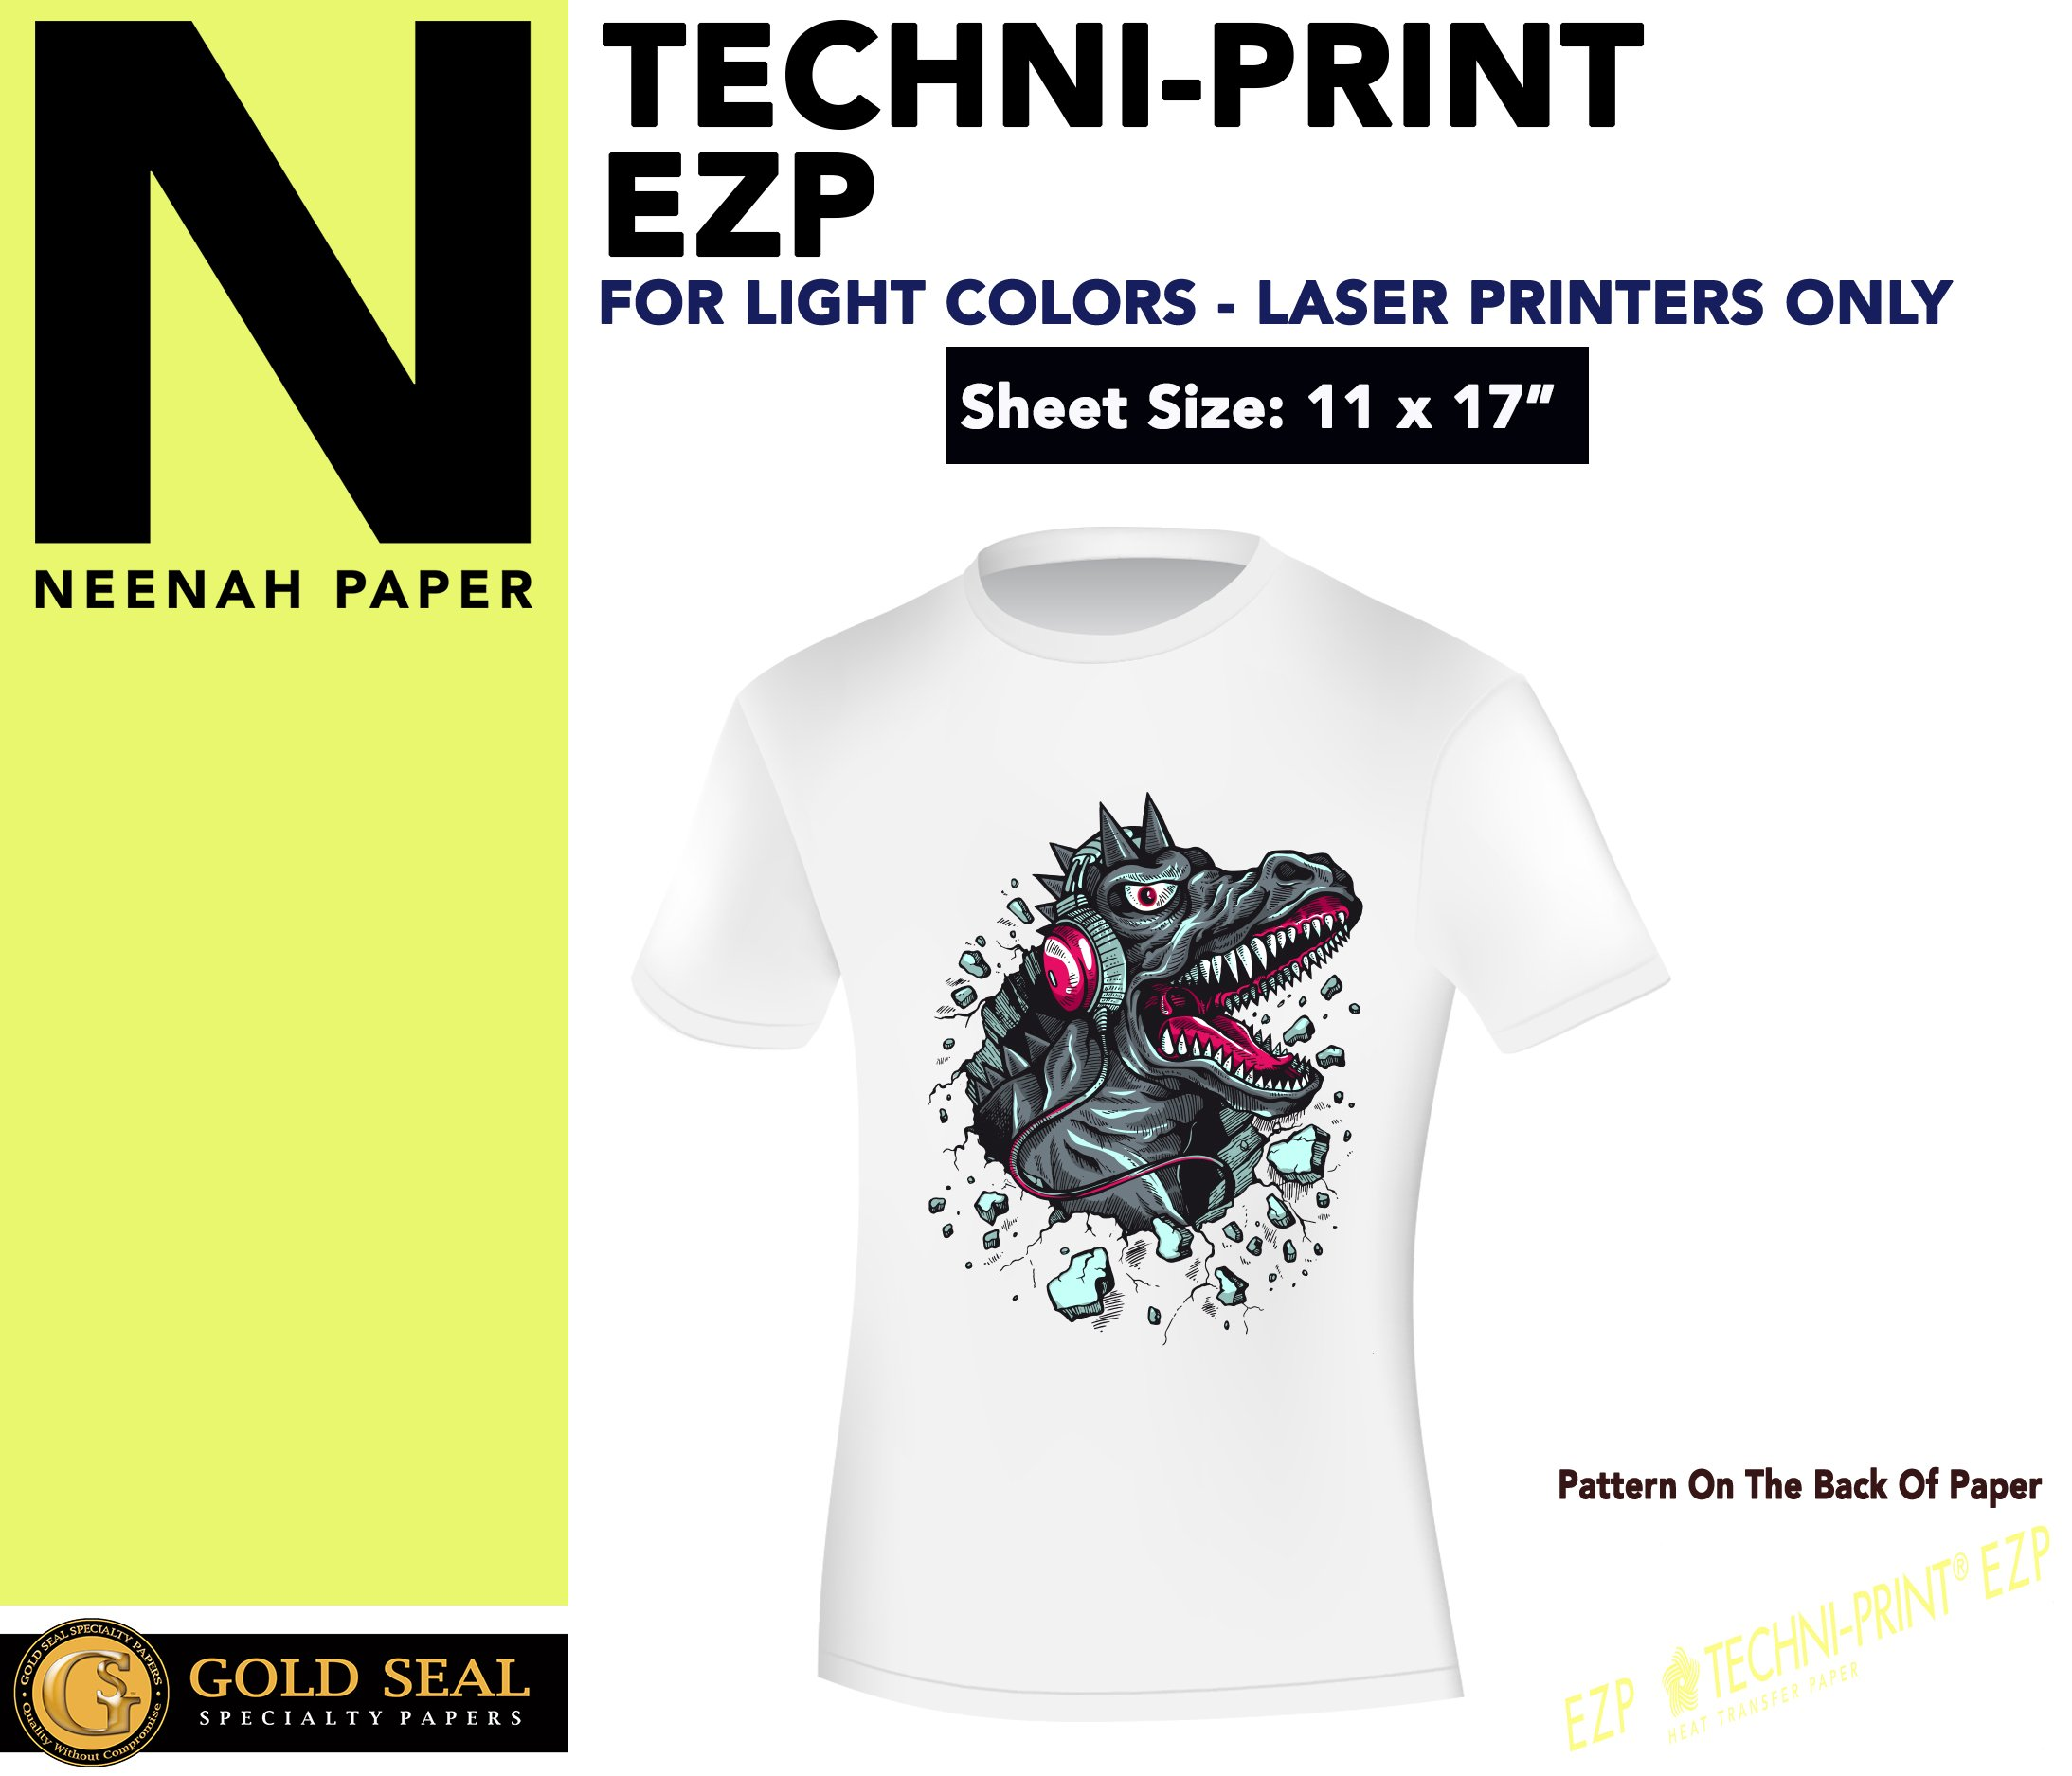 Sublimation Printing for Light Cotton Fabric (Yellow Line Heat Transfer Paper) 11'' x 17'' - 100 Sheets